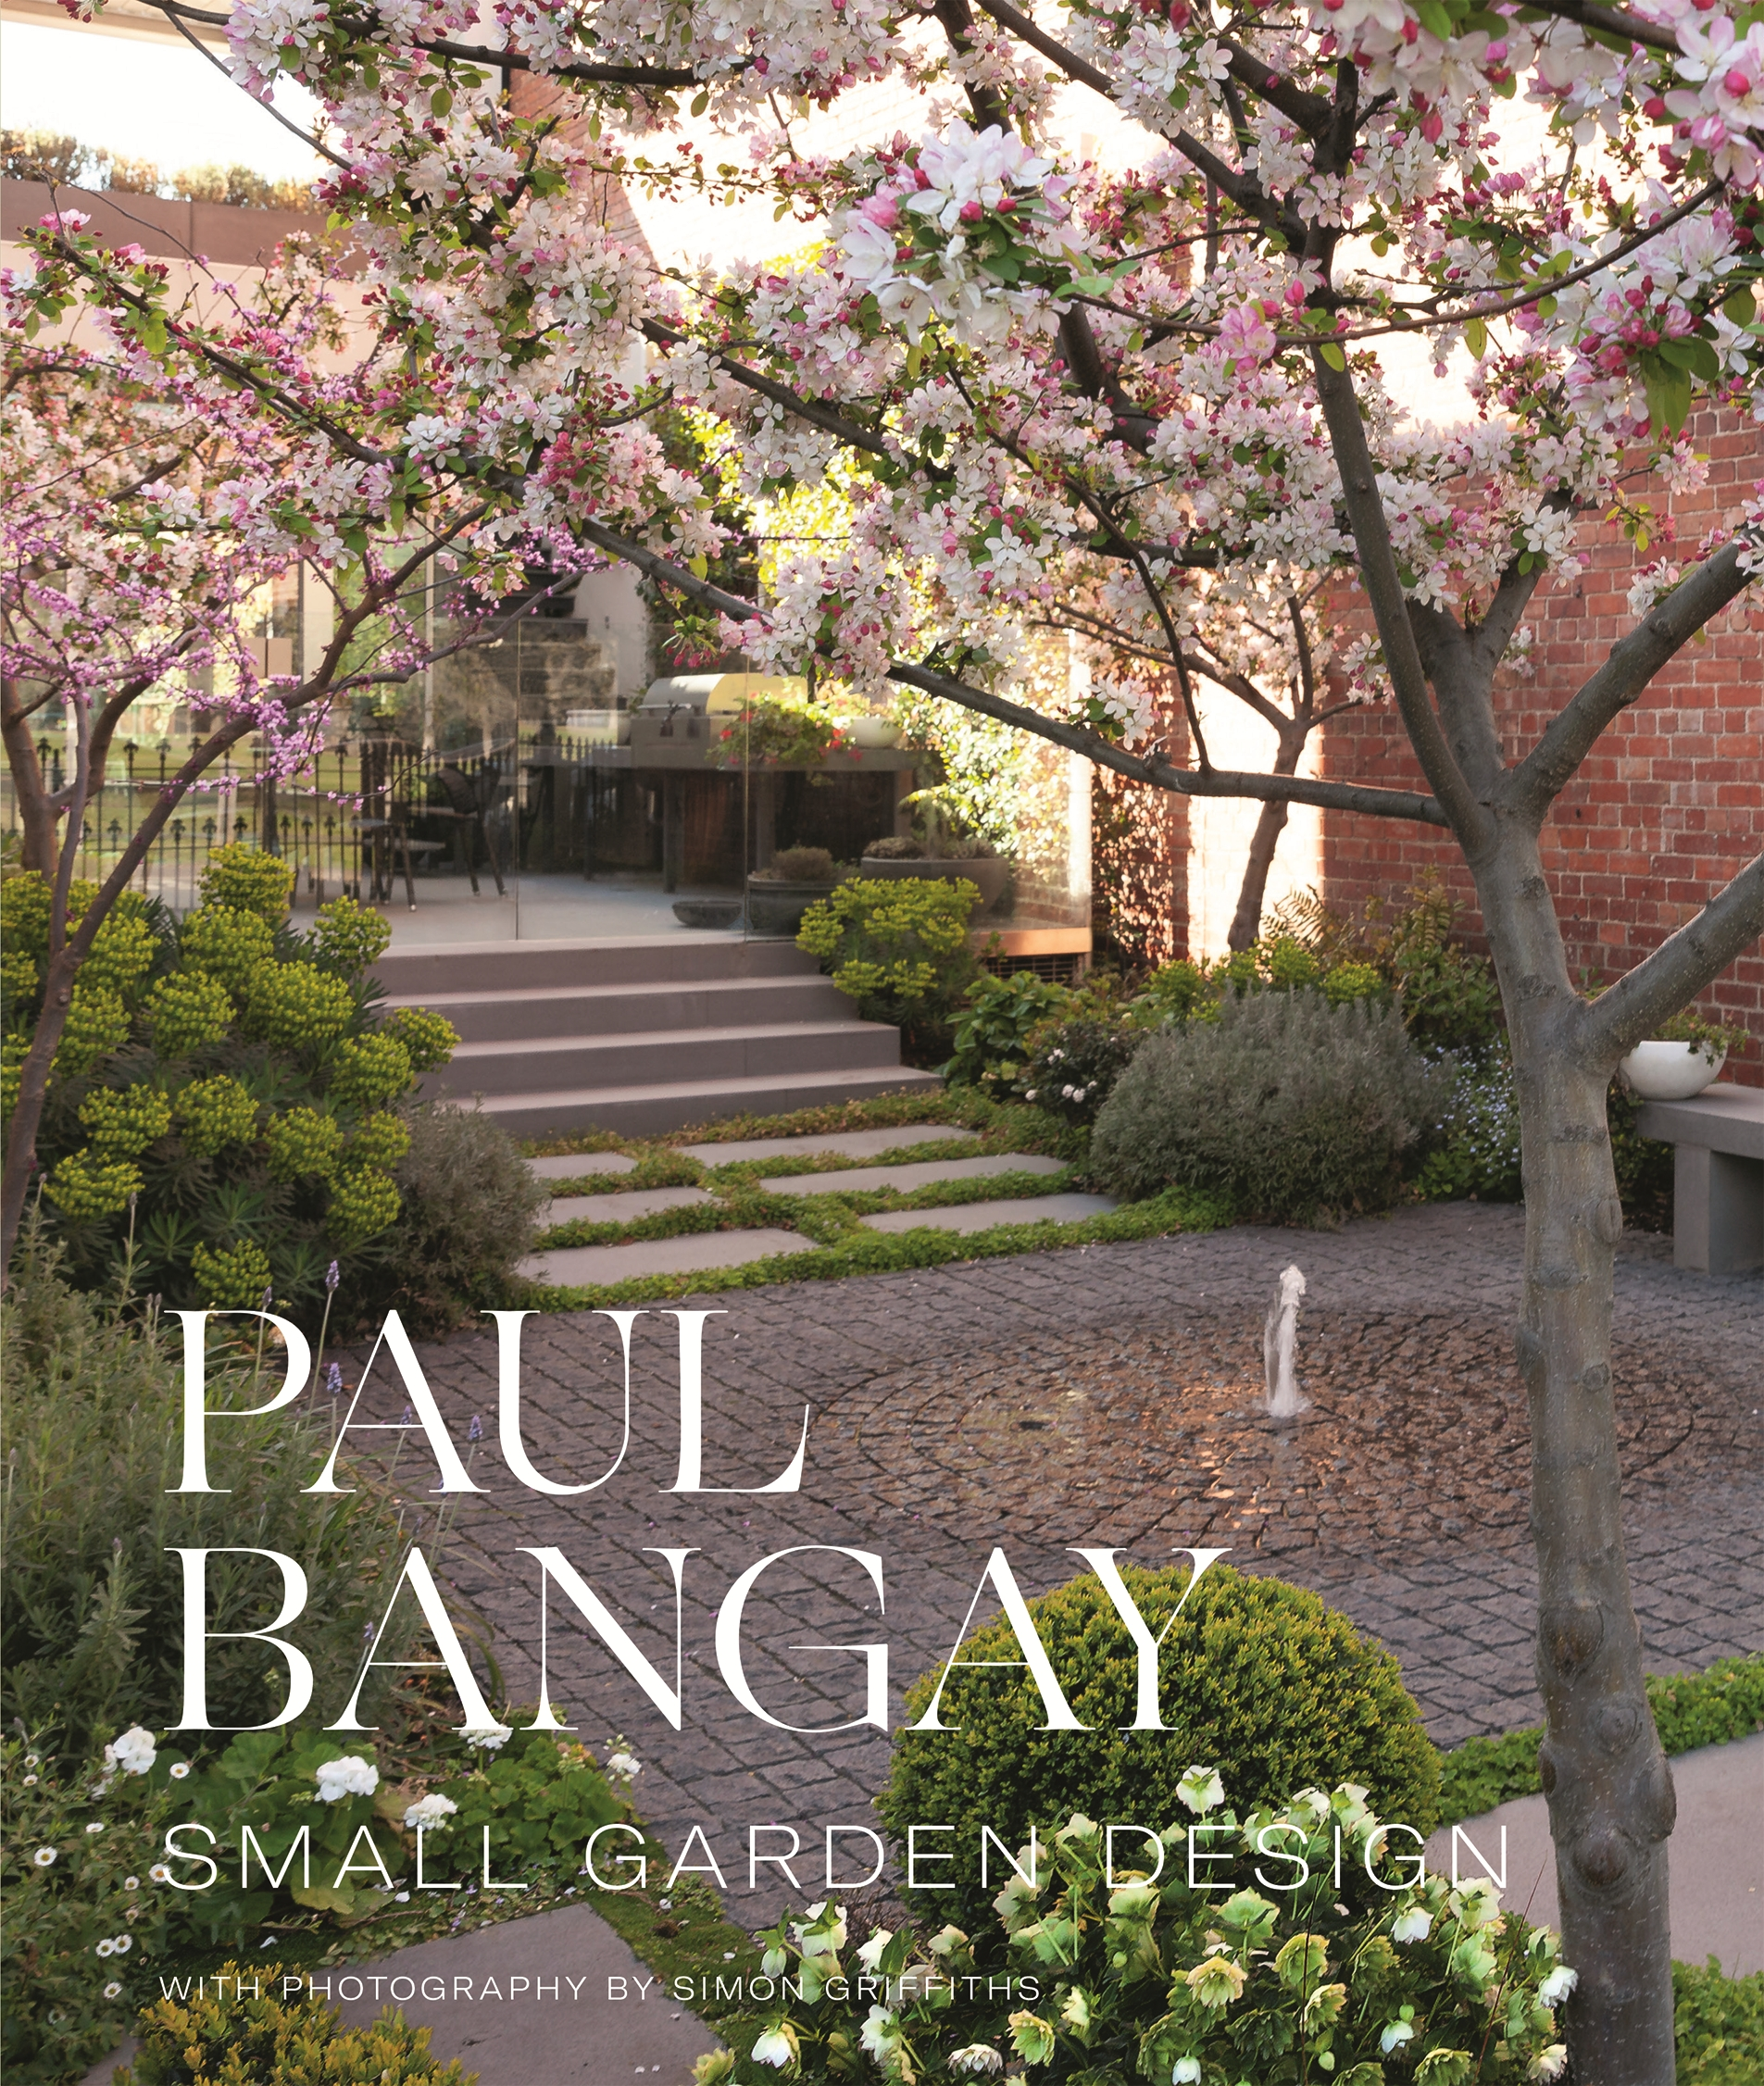 Small Garden Design By Paul Bangay Penguin Books Australia